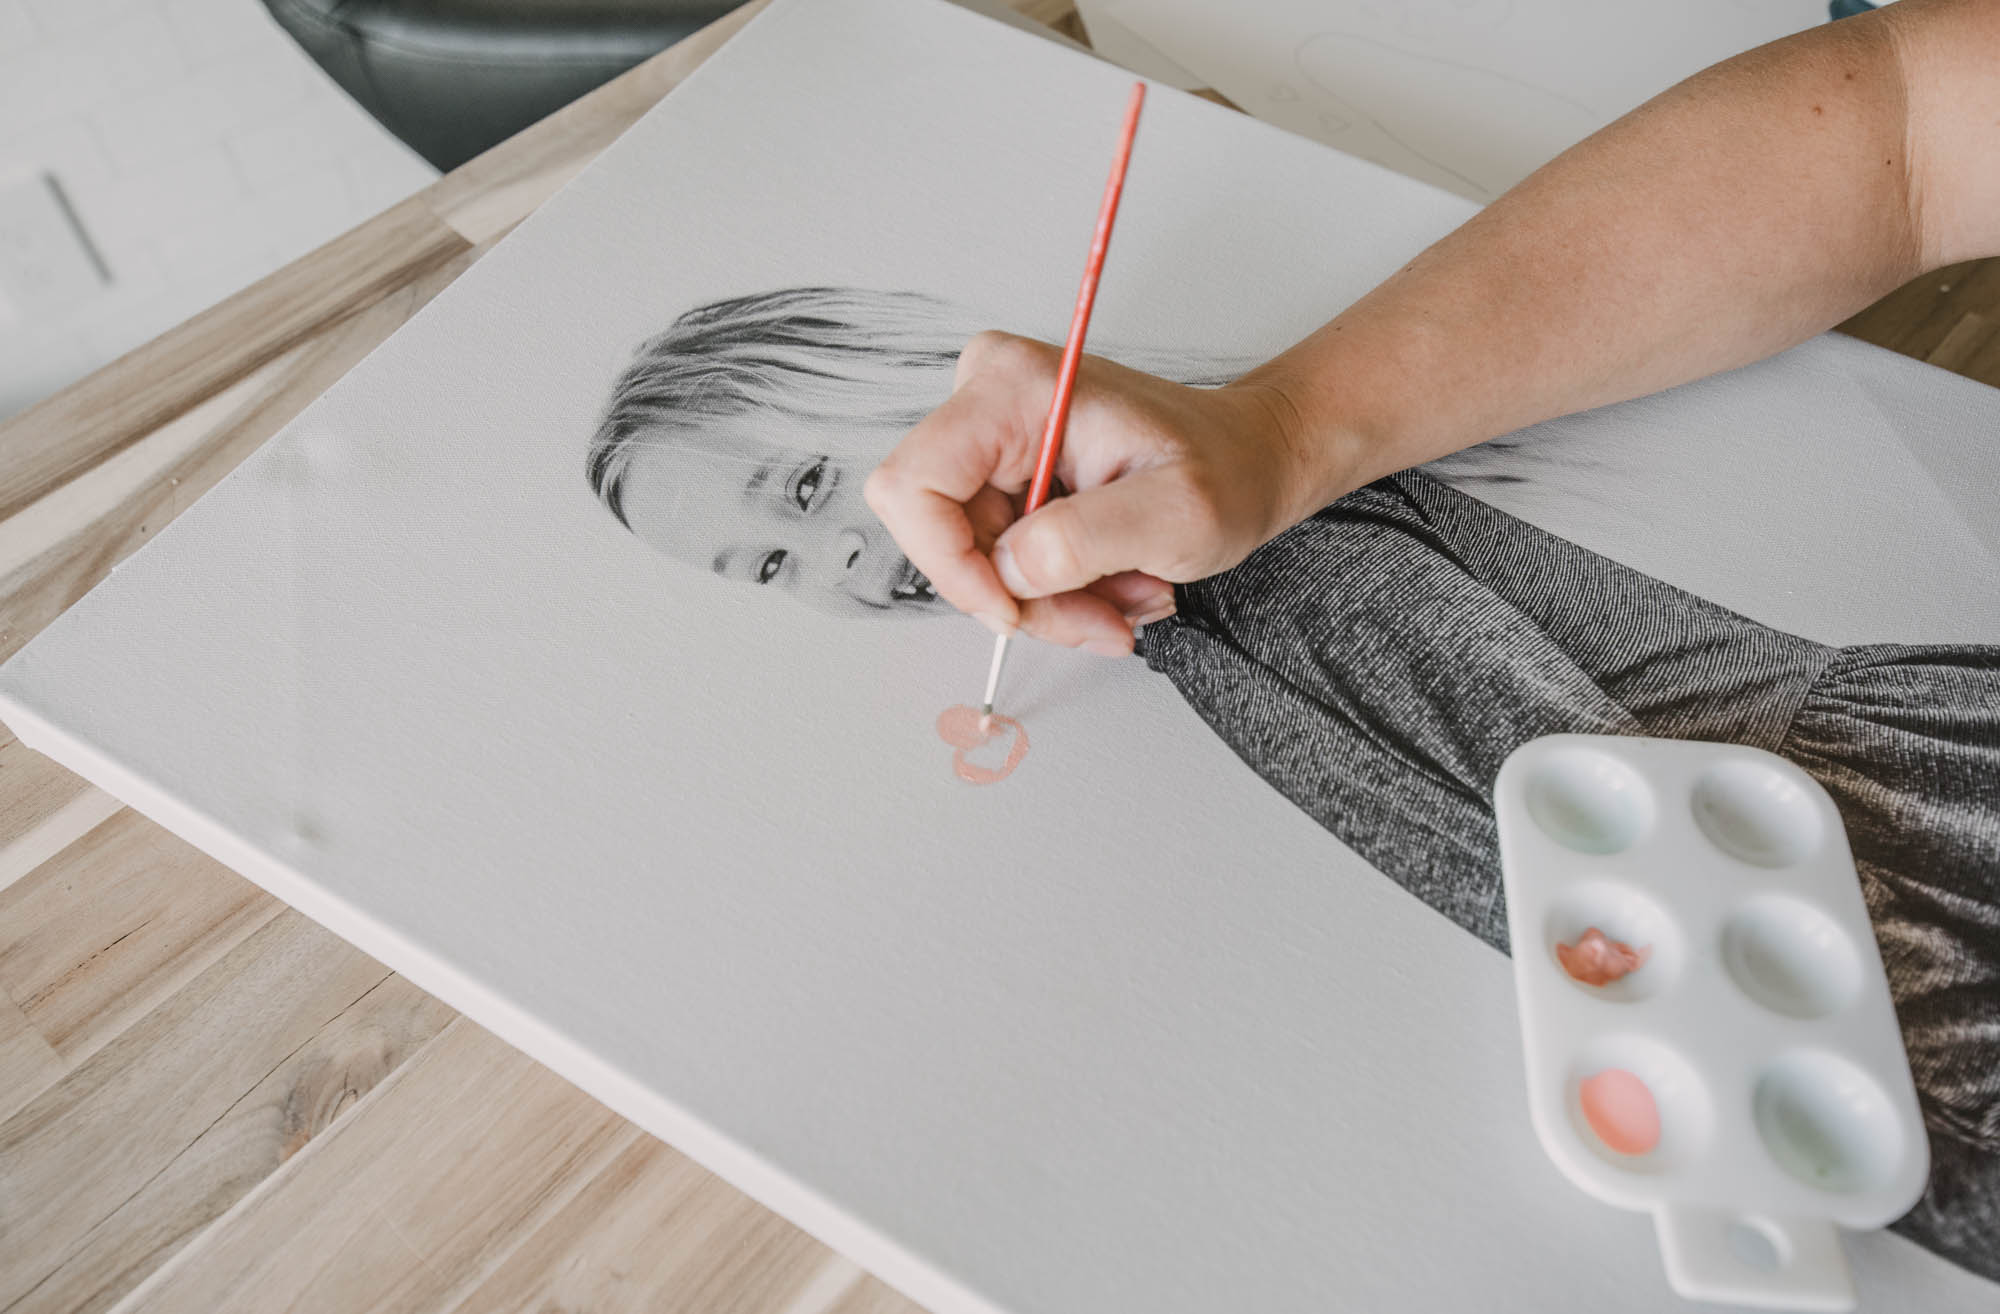 Paint on photo canvases